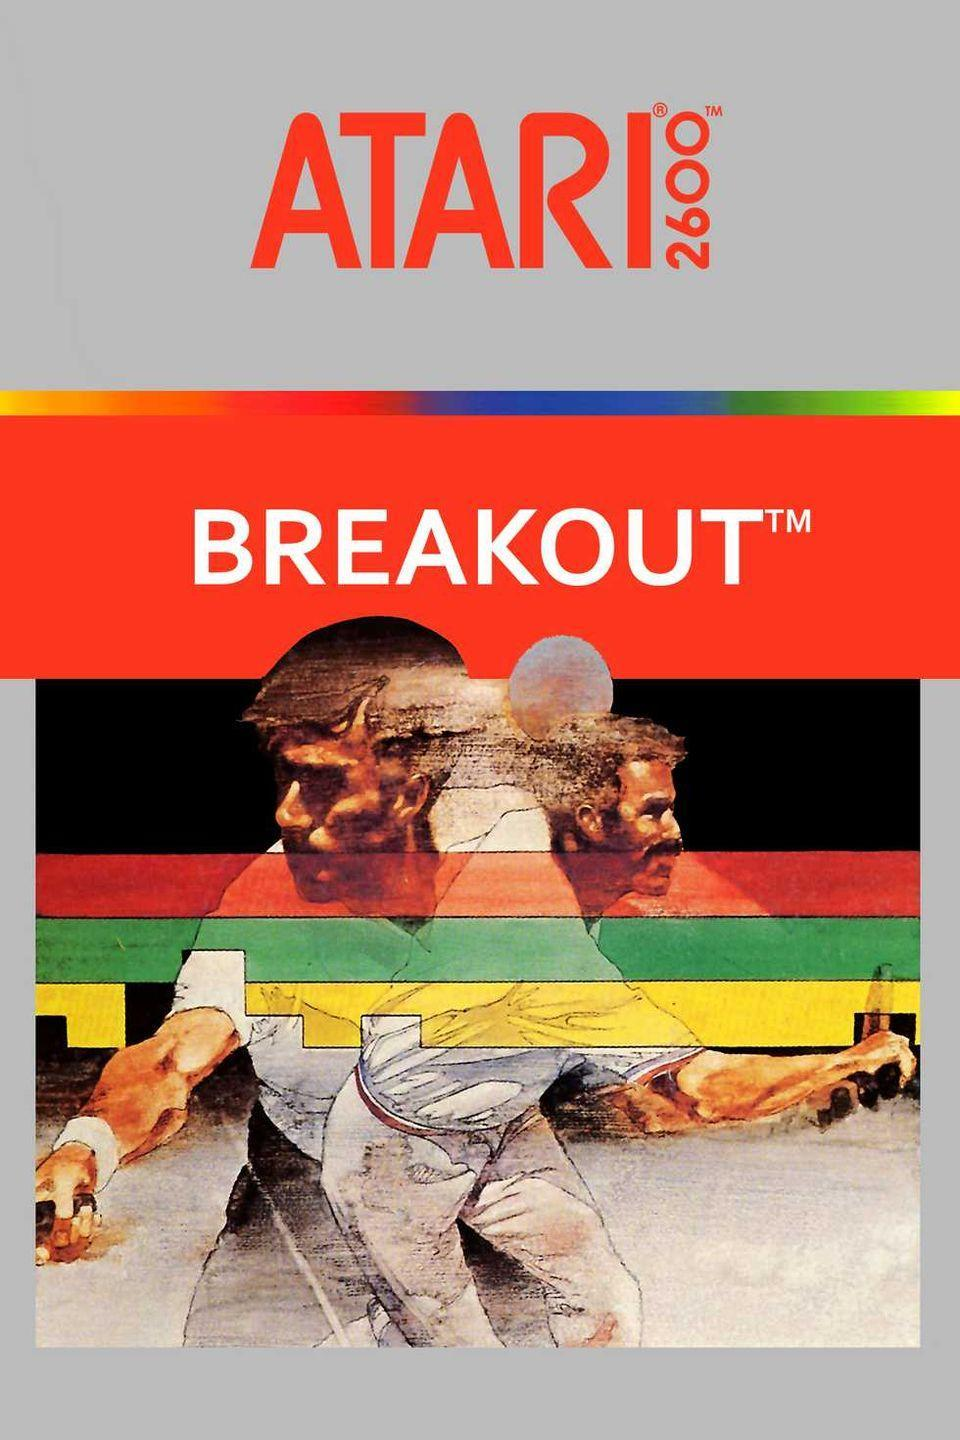 "<p><em>Breakout</em> has a much bigger importance than just video games. For one, it was originally built by Steve Wozniak with the help of Steve Jobs, the co-founders of Apple Computers. It was also the inspiration for many features in the Apple II computer. Of course, it also helped that it was mindlessly addicting. Although Atari eventually redesigned Wozniak's creation, you can still find <em>Breakout</em>, or some updated knockoff, on smartphones and tablets today.<br></p><p><a class=""link rapid-noclick-resp"" href=""https://www.amazon.com/Atari-Flashback-Deluxe-games-sega-genesis/dp/B076KYFWNX/?tag=syn-yahoo-20&ascsubtag=%5Bartid%7C10054.g.2871%5Bsrc%7Cyahoo-us"" rel=""nofollow noopener"" target=""_blank"" data-ylk=""slk:PLAY NOW"">PLAY NOW</a></p>"